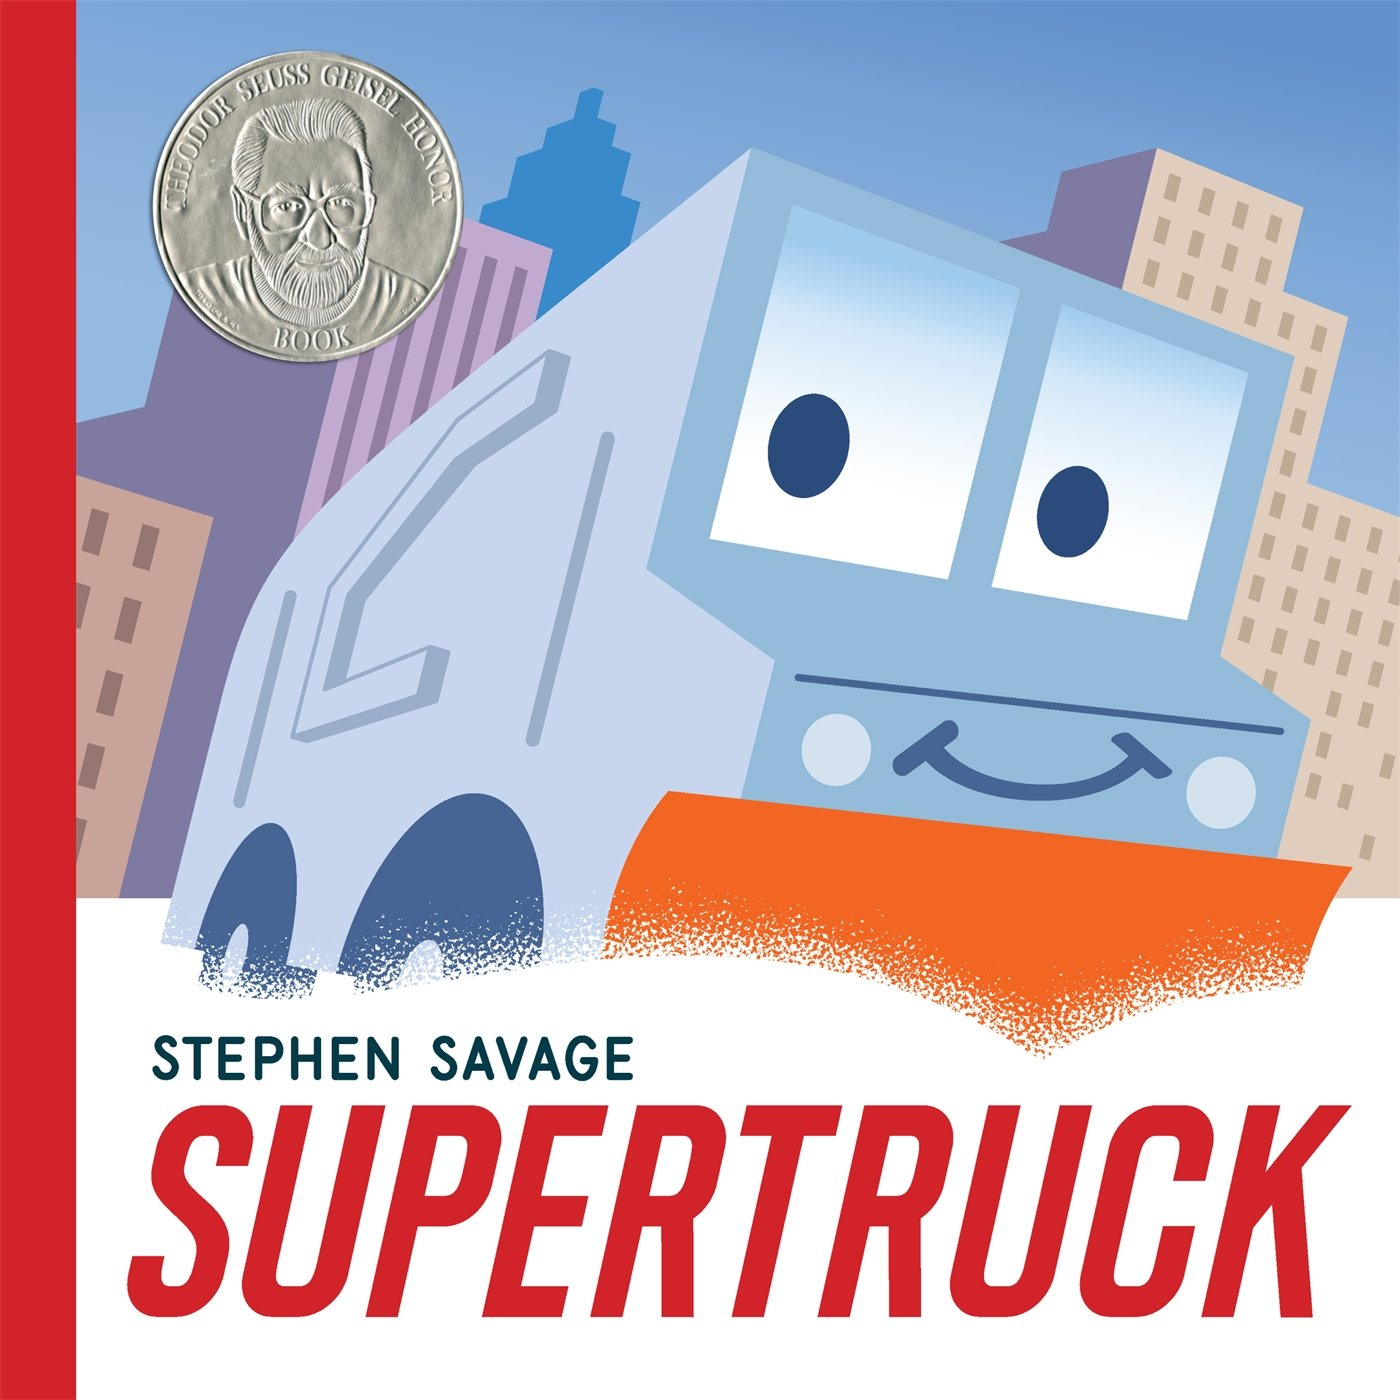 SUPERTRUCK.jpg